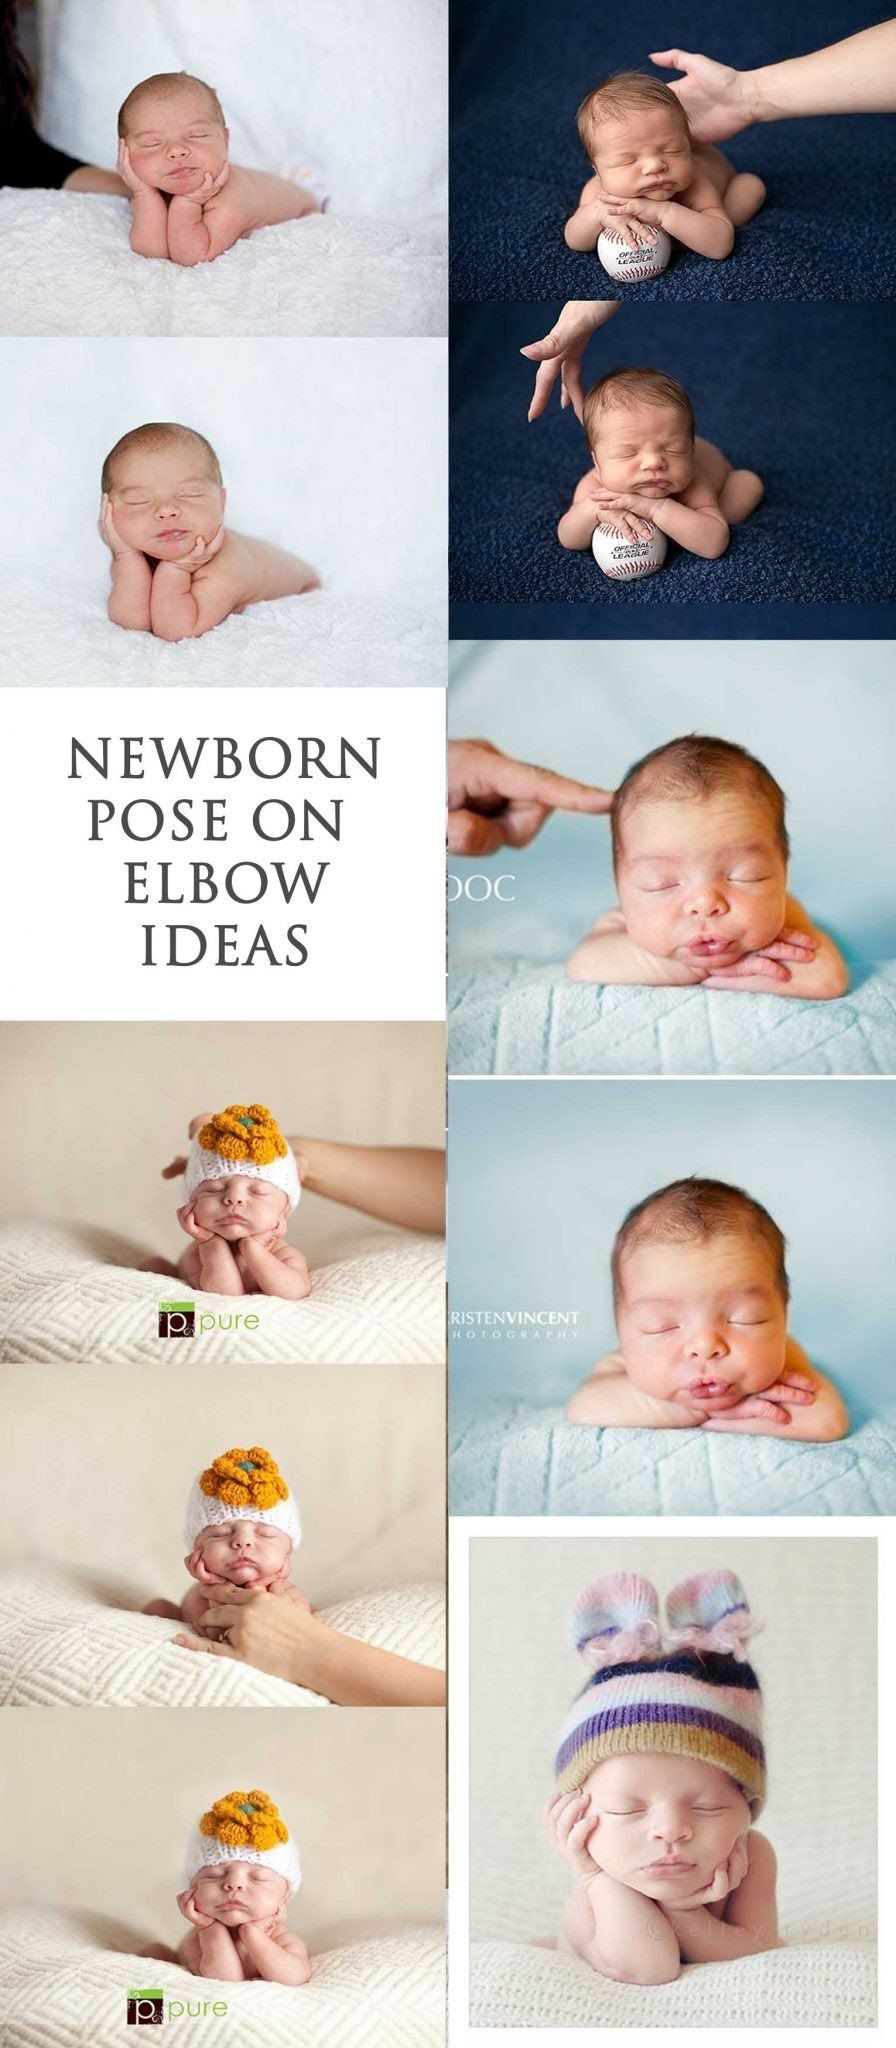 2019 Trend of Newborn Photography Ideas & Tips for Poses, Props & Settings